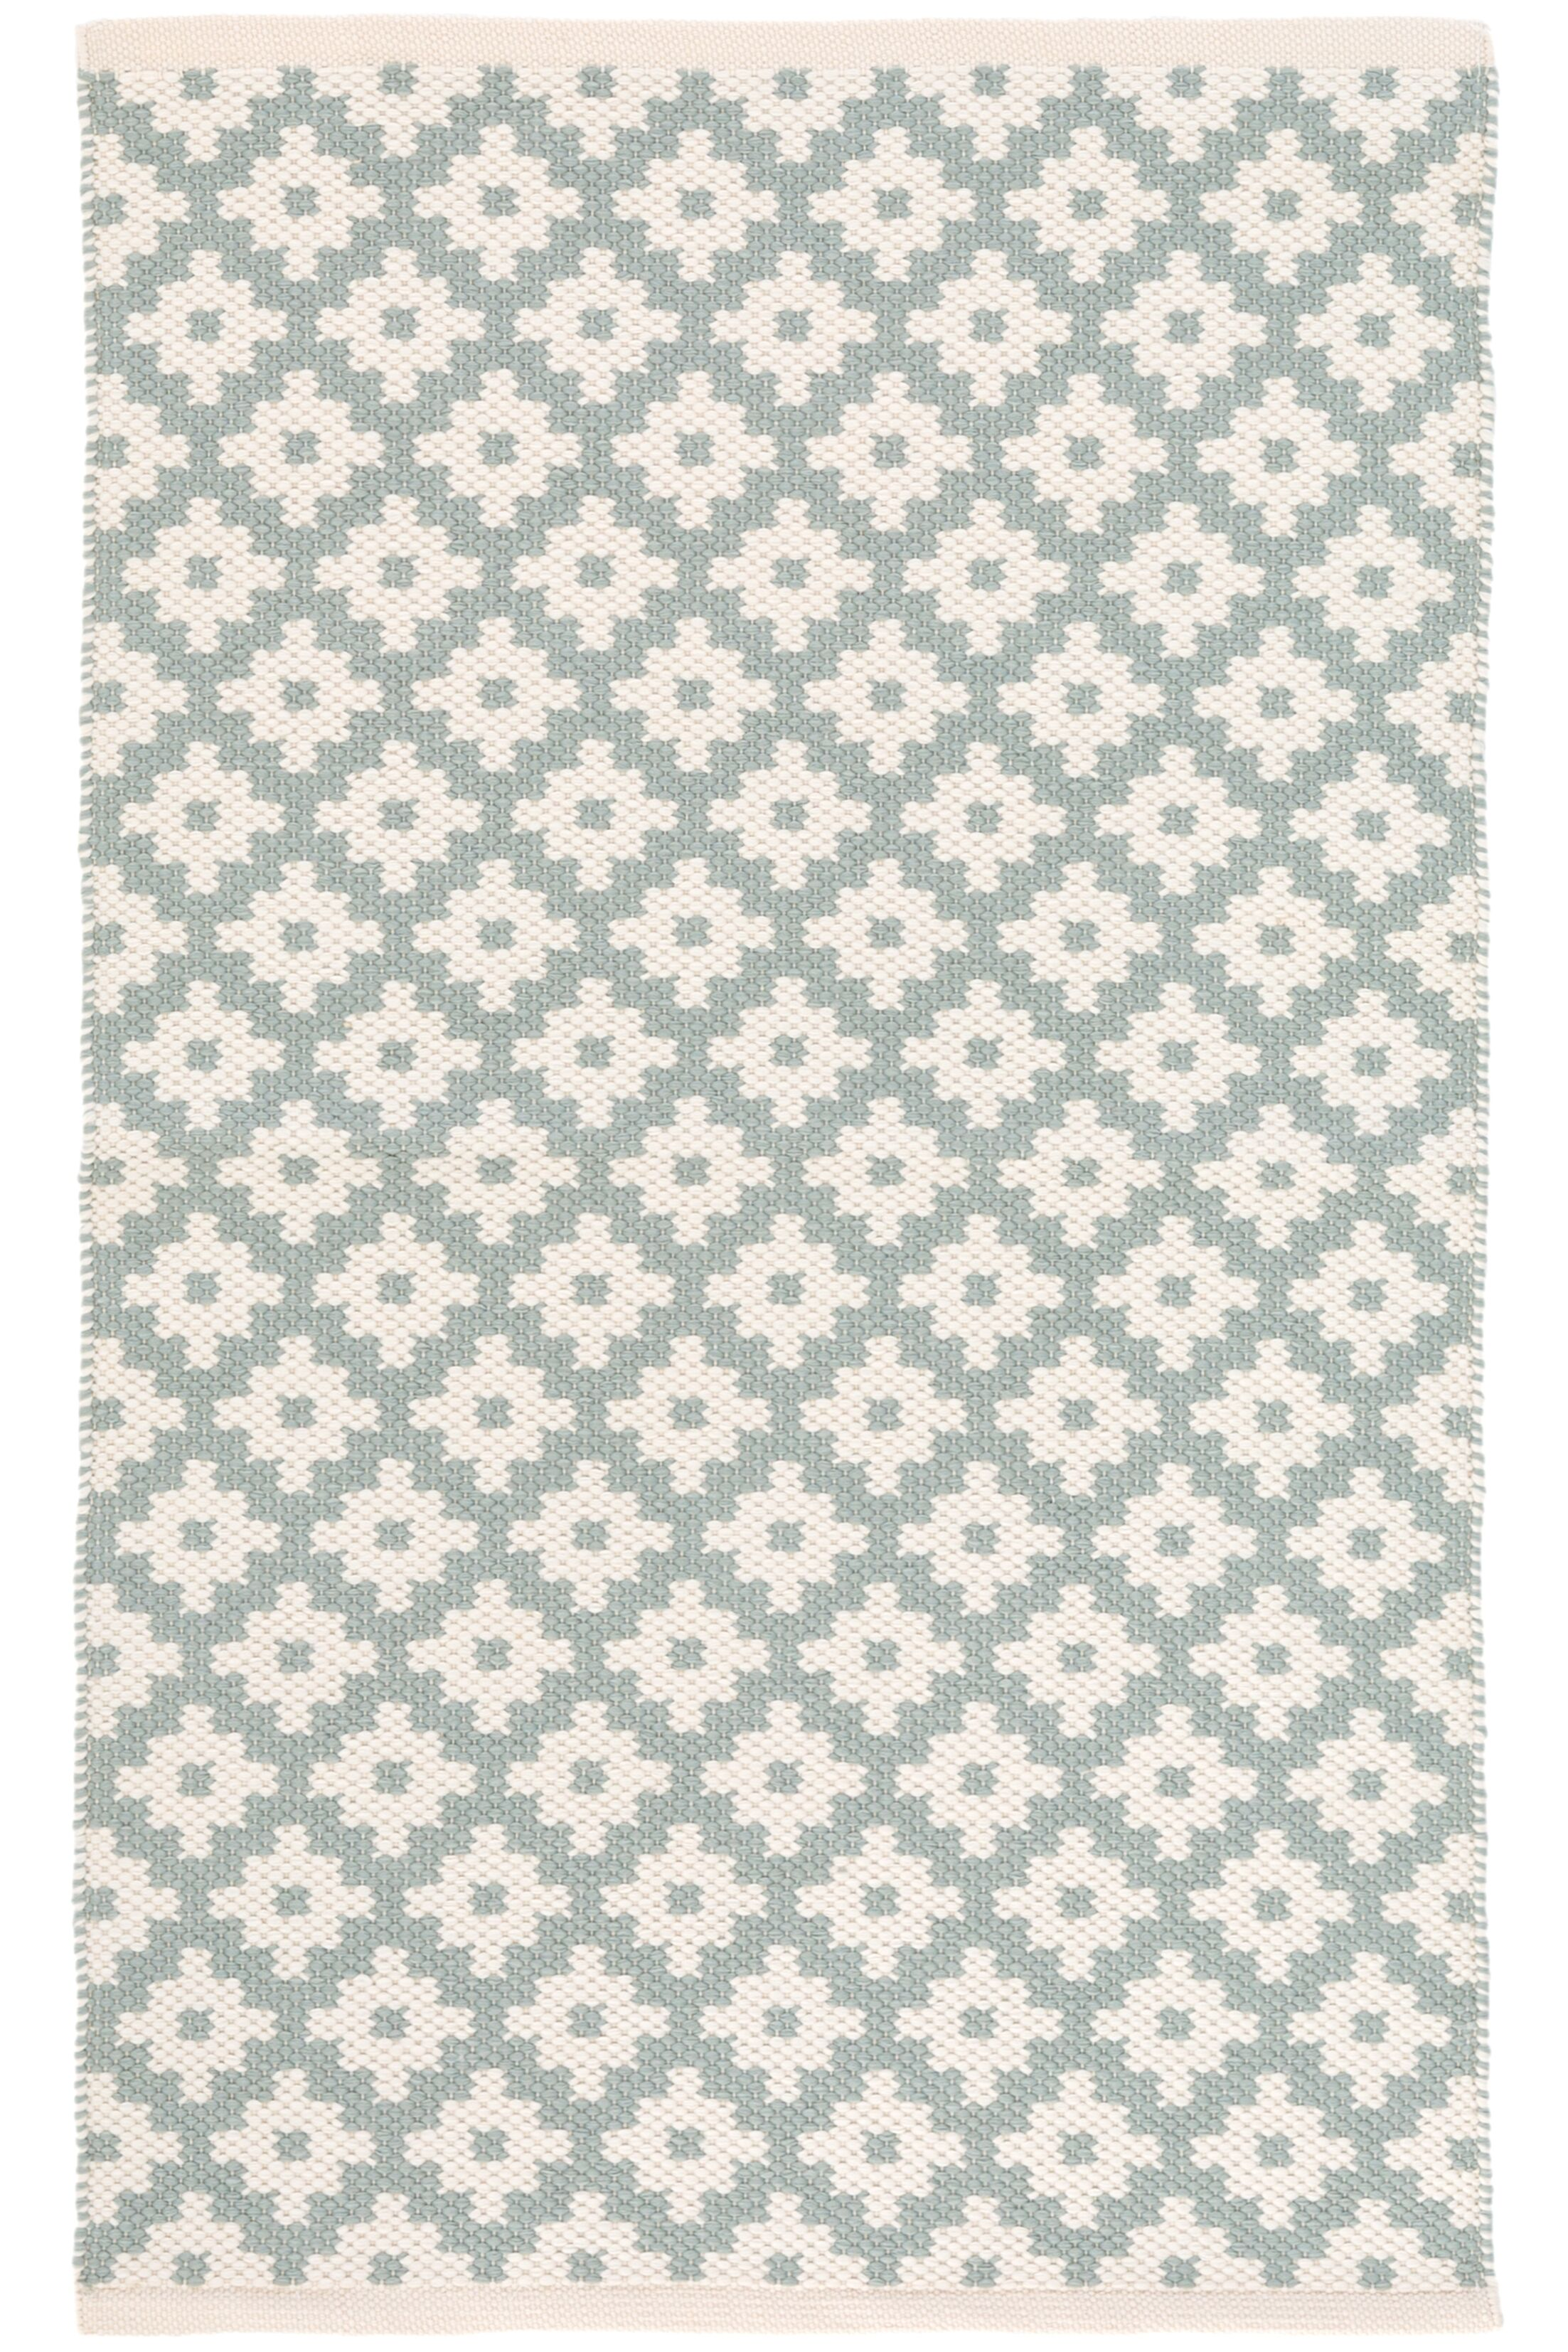 Samode Blue/White Indoor/Outdoor Area Rug Rug Size: Runner 2'6